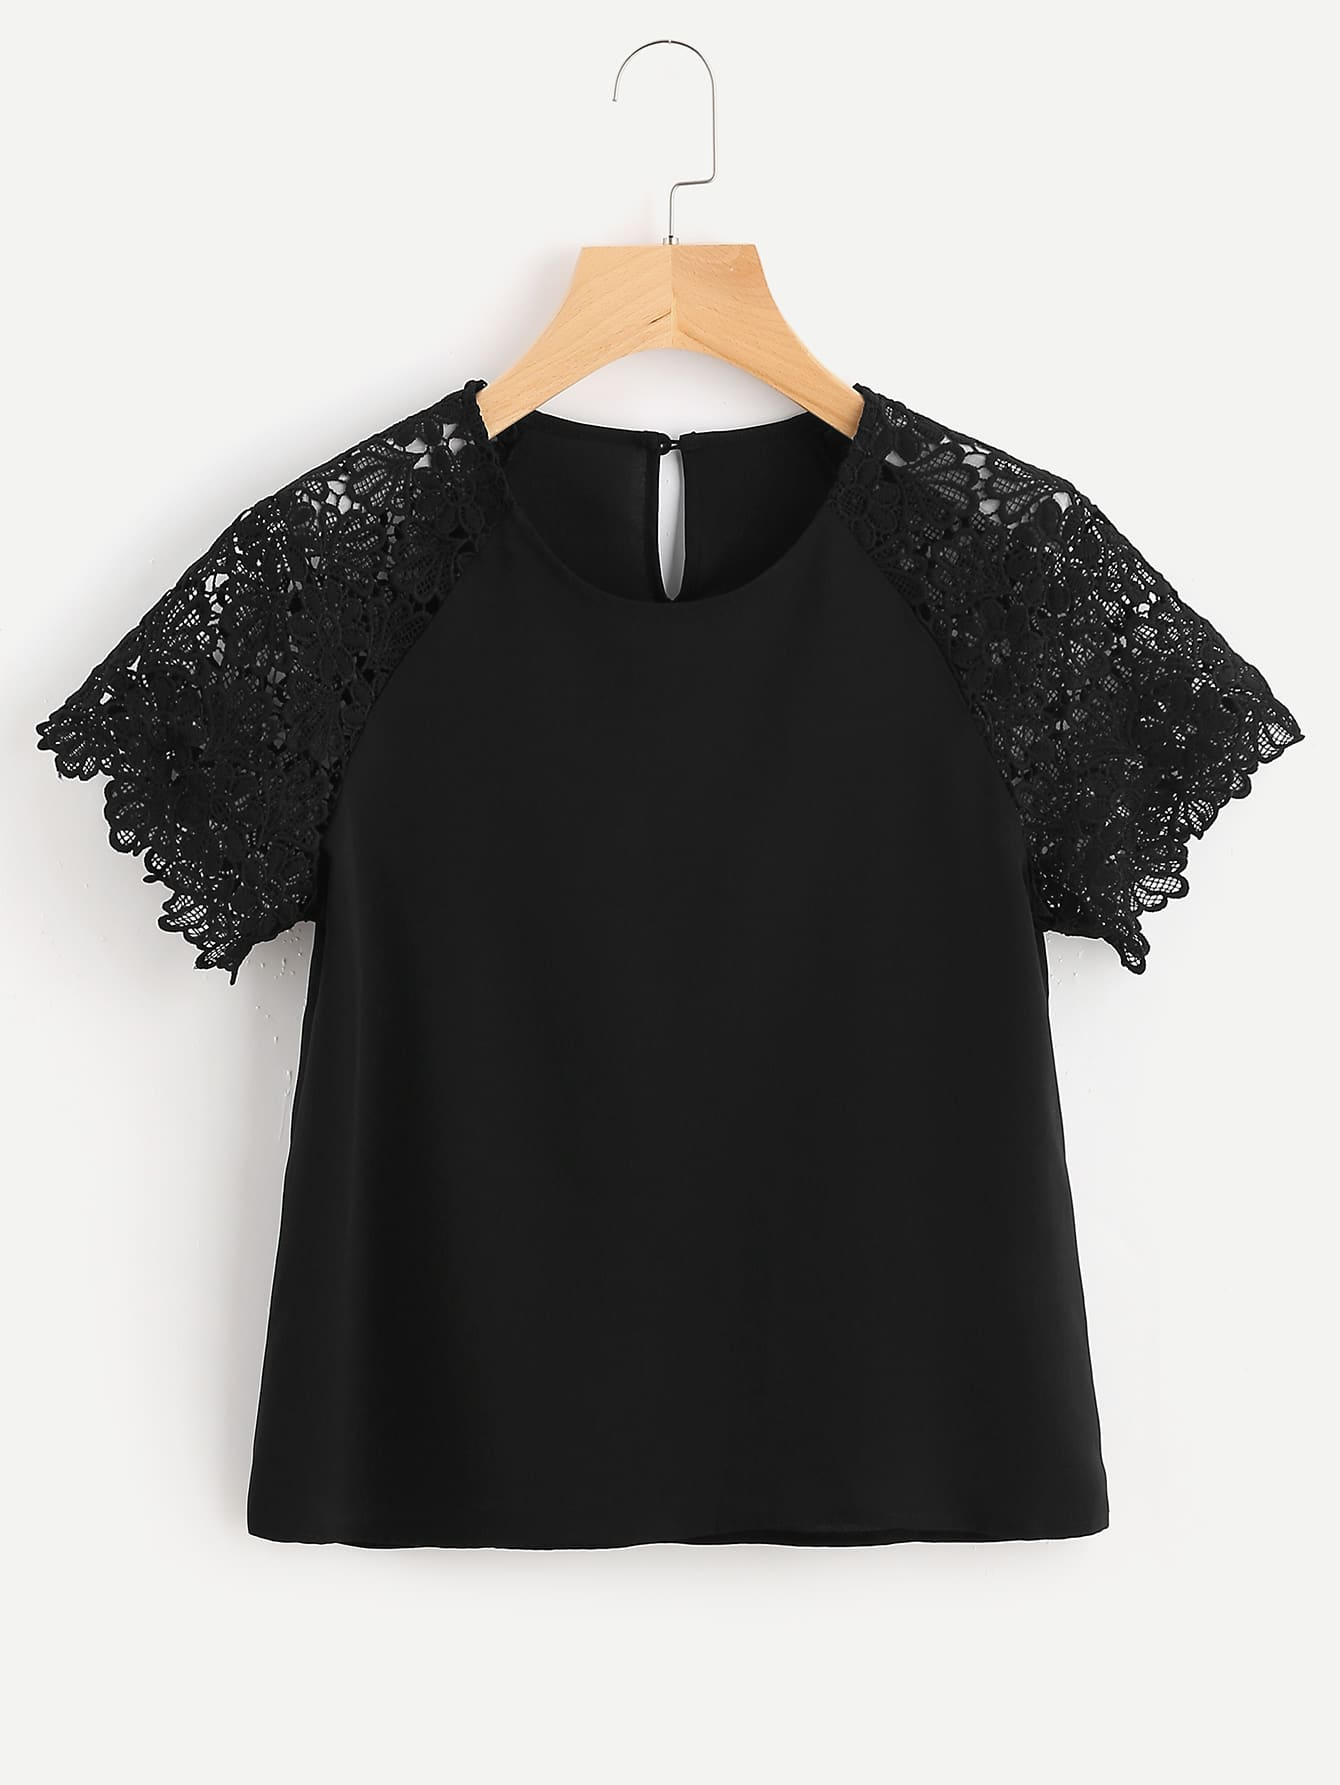 Buttoned Keyhole Back Floral Lace Raglan Sleeve Top